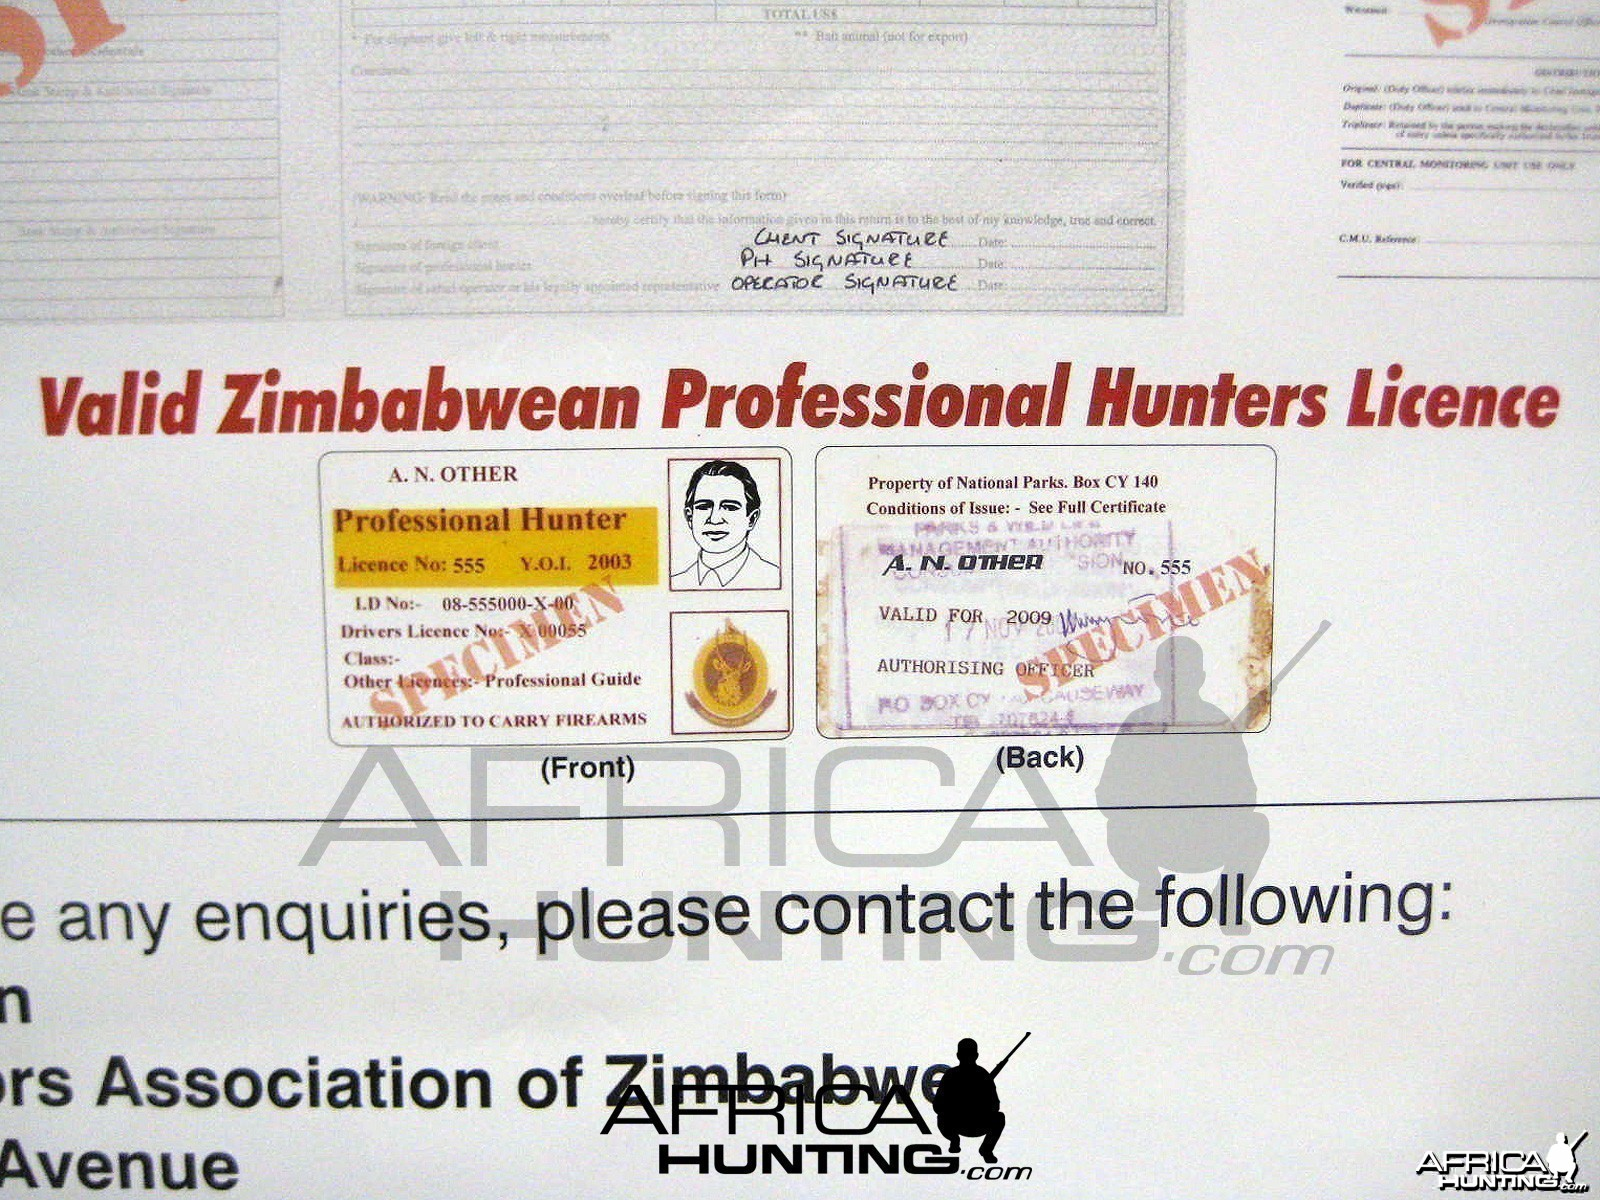 Hunting Zimbabwe - Important Notice To All Hunting Clients